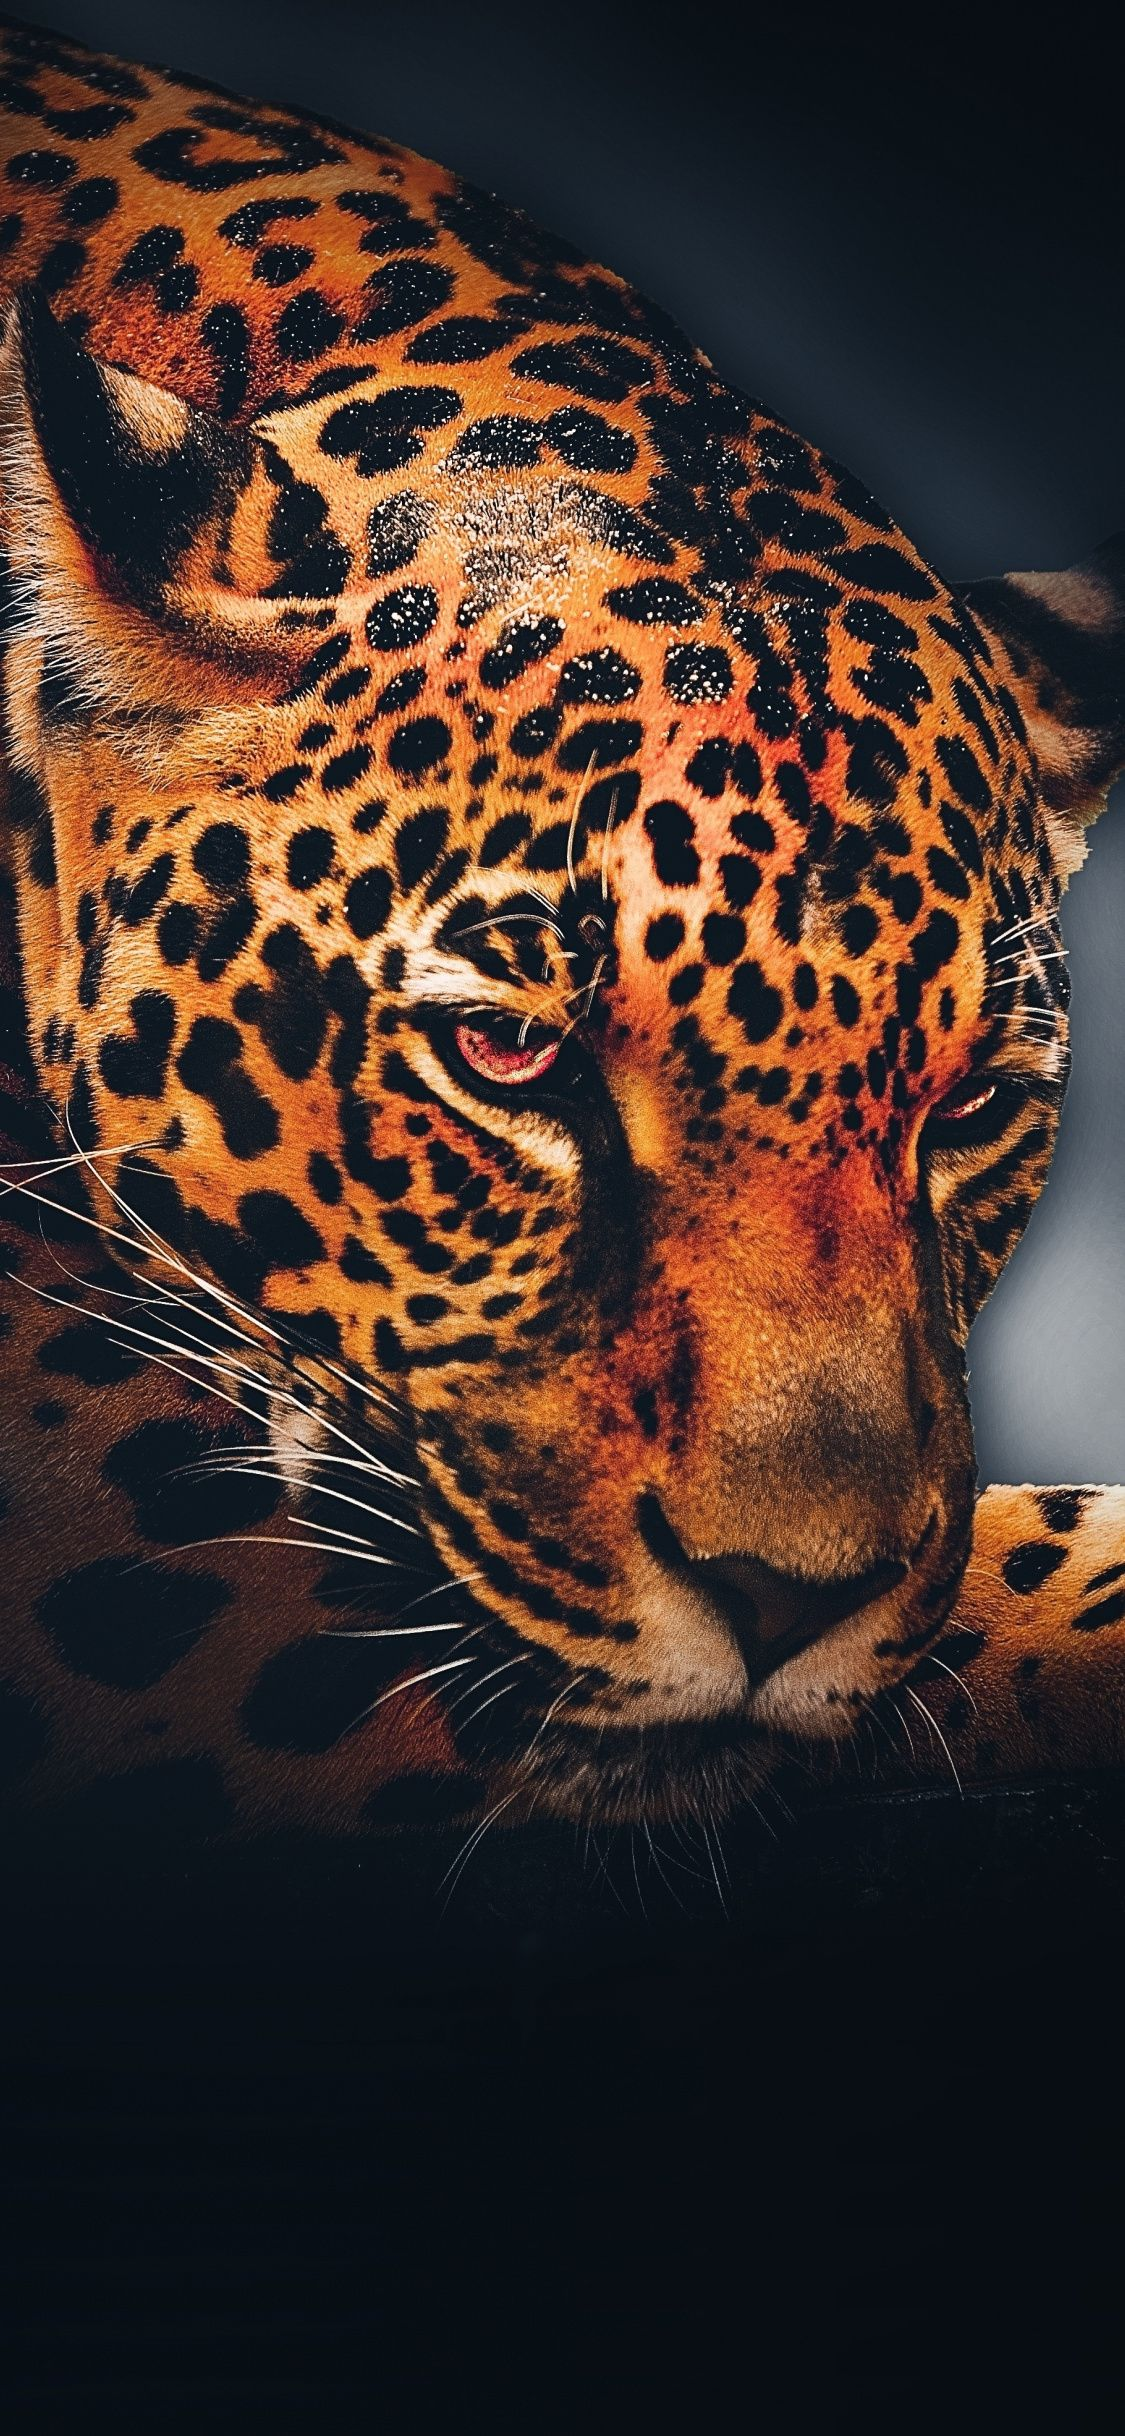 1125x2436 Leopard Animal Relaxed Portrait Wallpaper Animals Animal Wallpaper Jaguar Wallpaper